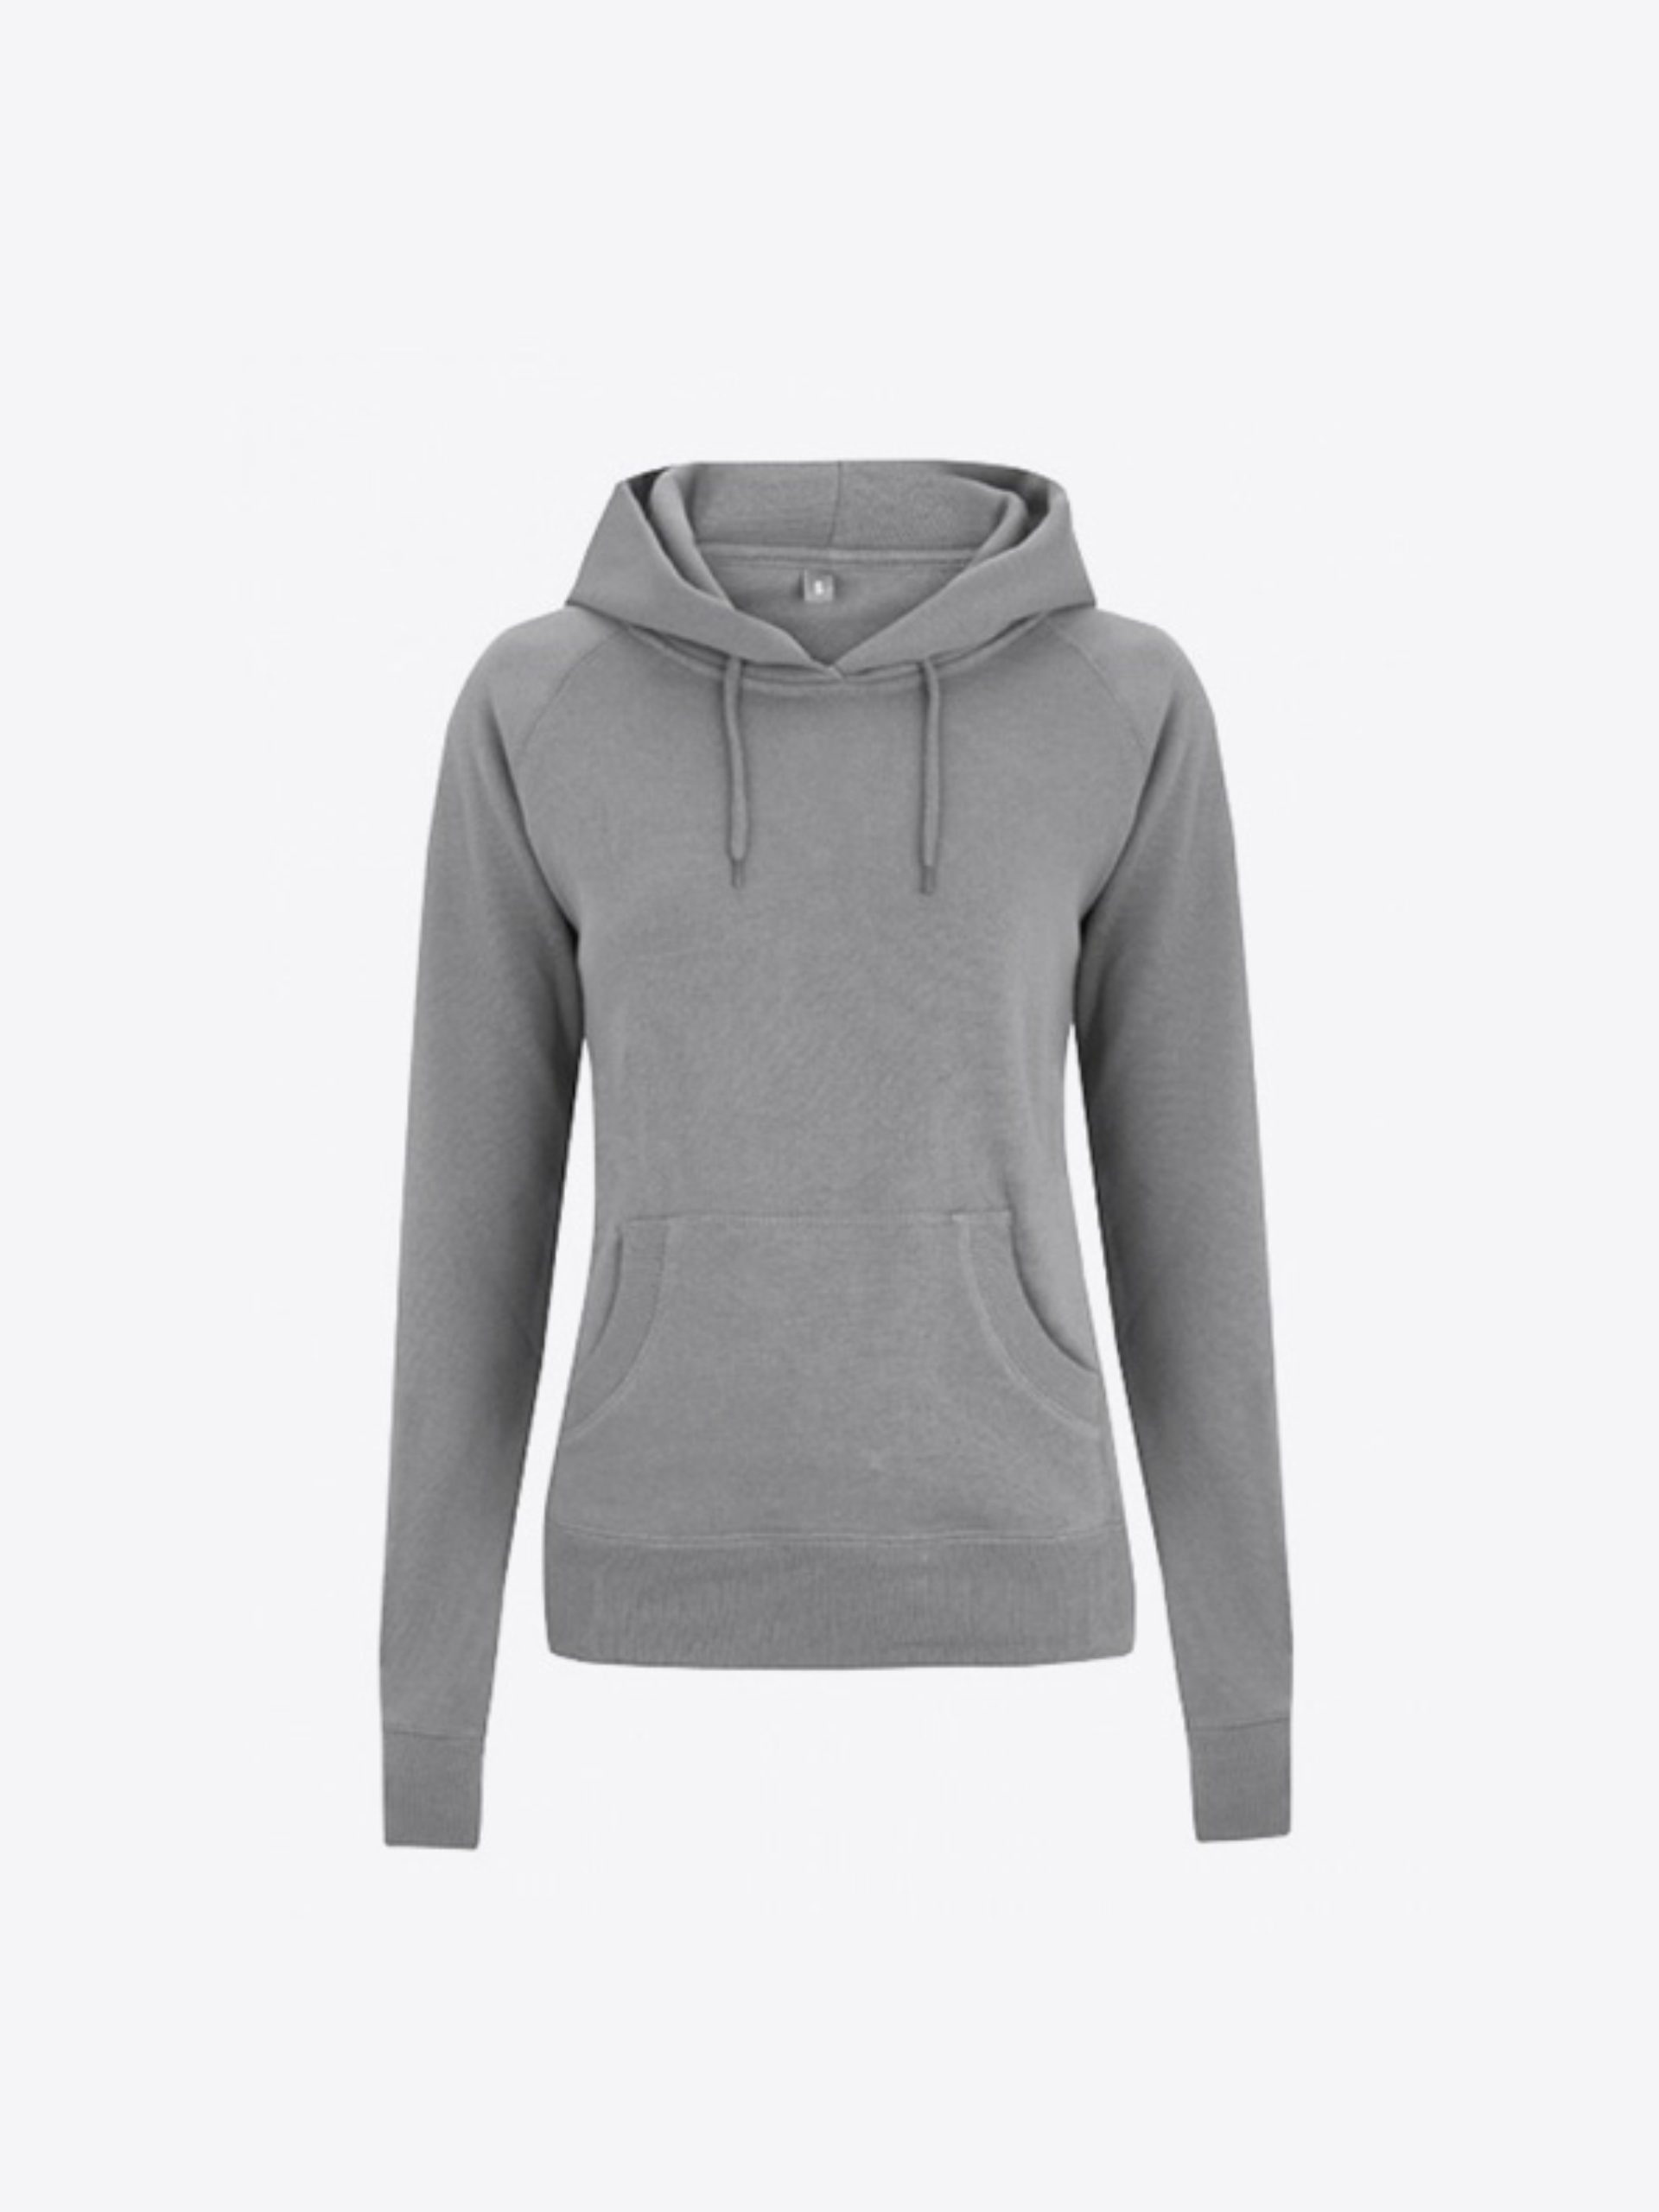 Damen Sweatshirt Continental Bedrucken Besticken N53p Heather Grey